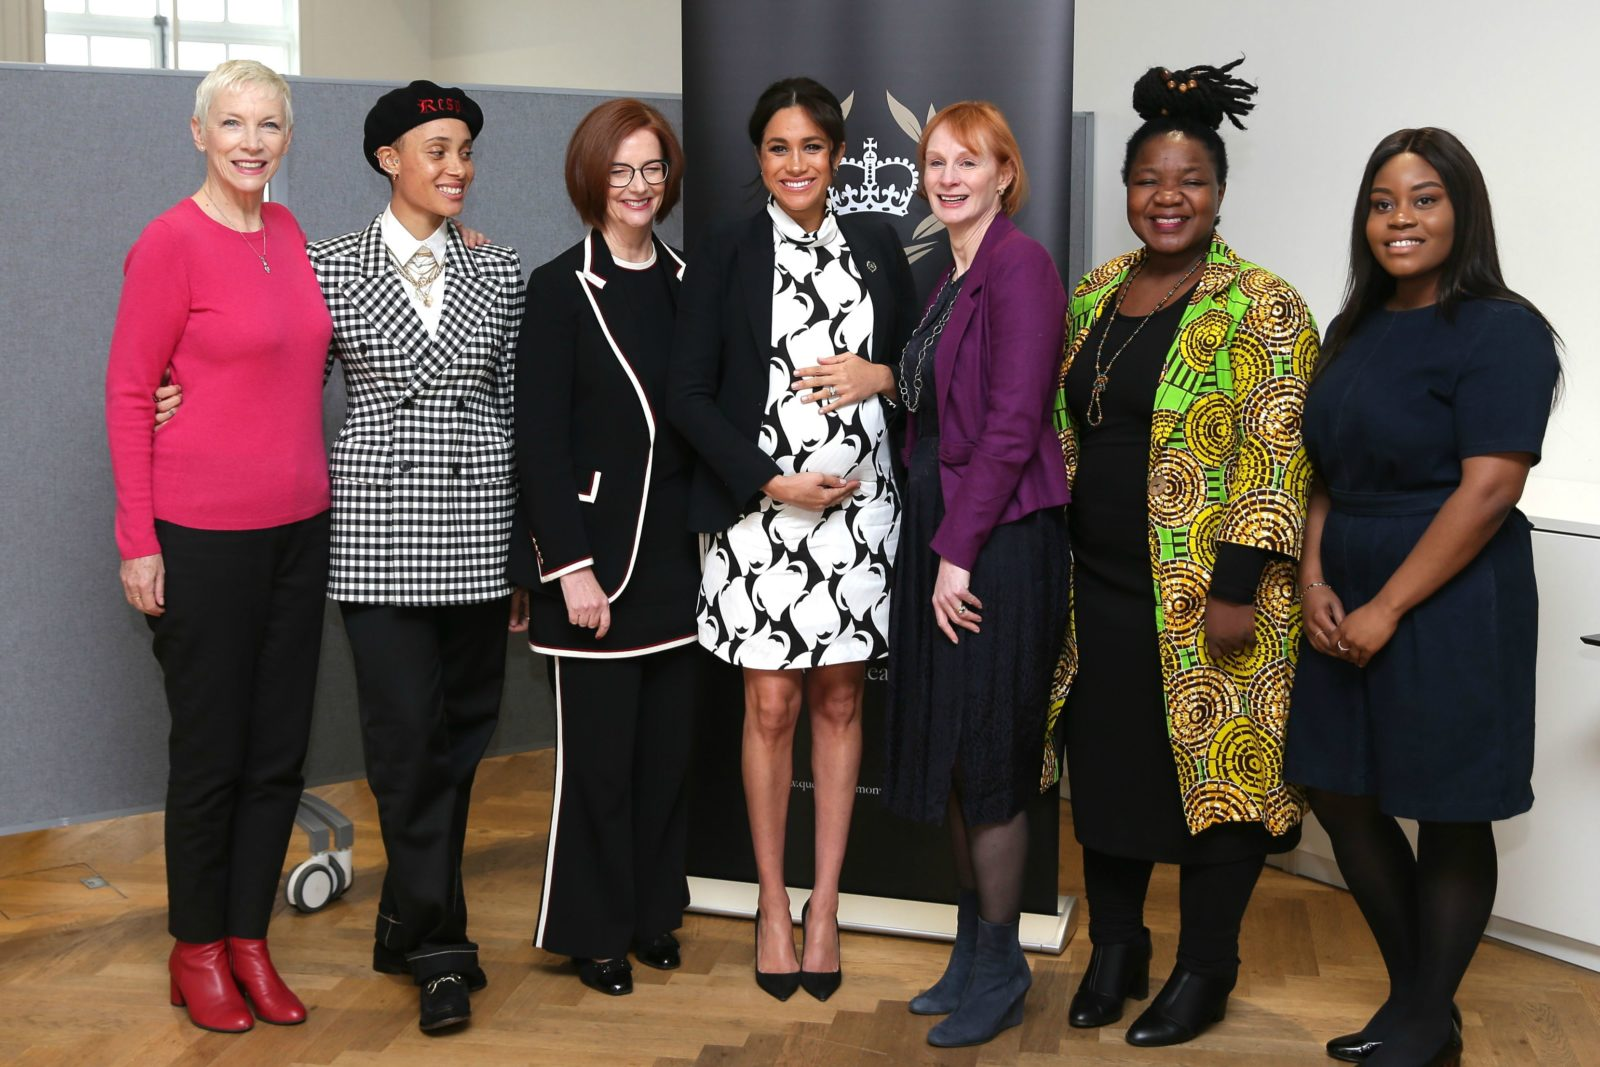 Meghan joined a star-studded panel. Source: Getty.